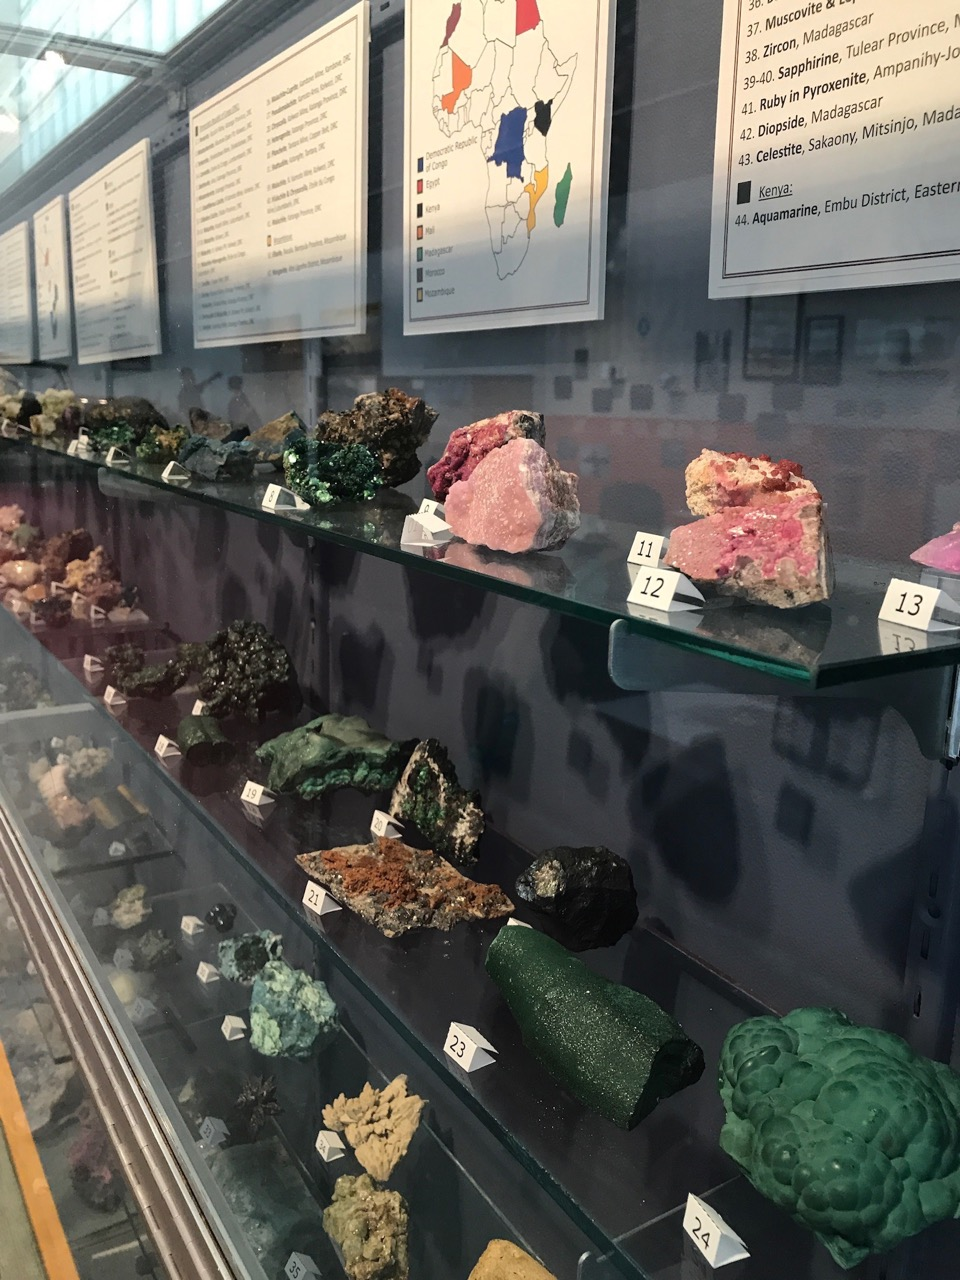 A display of minerals